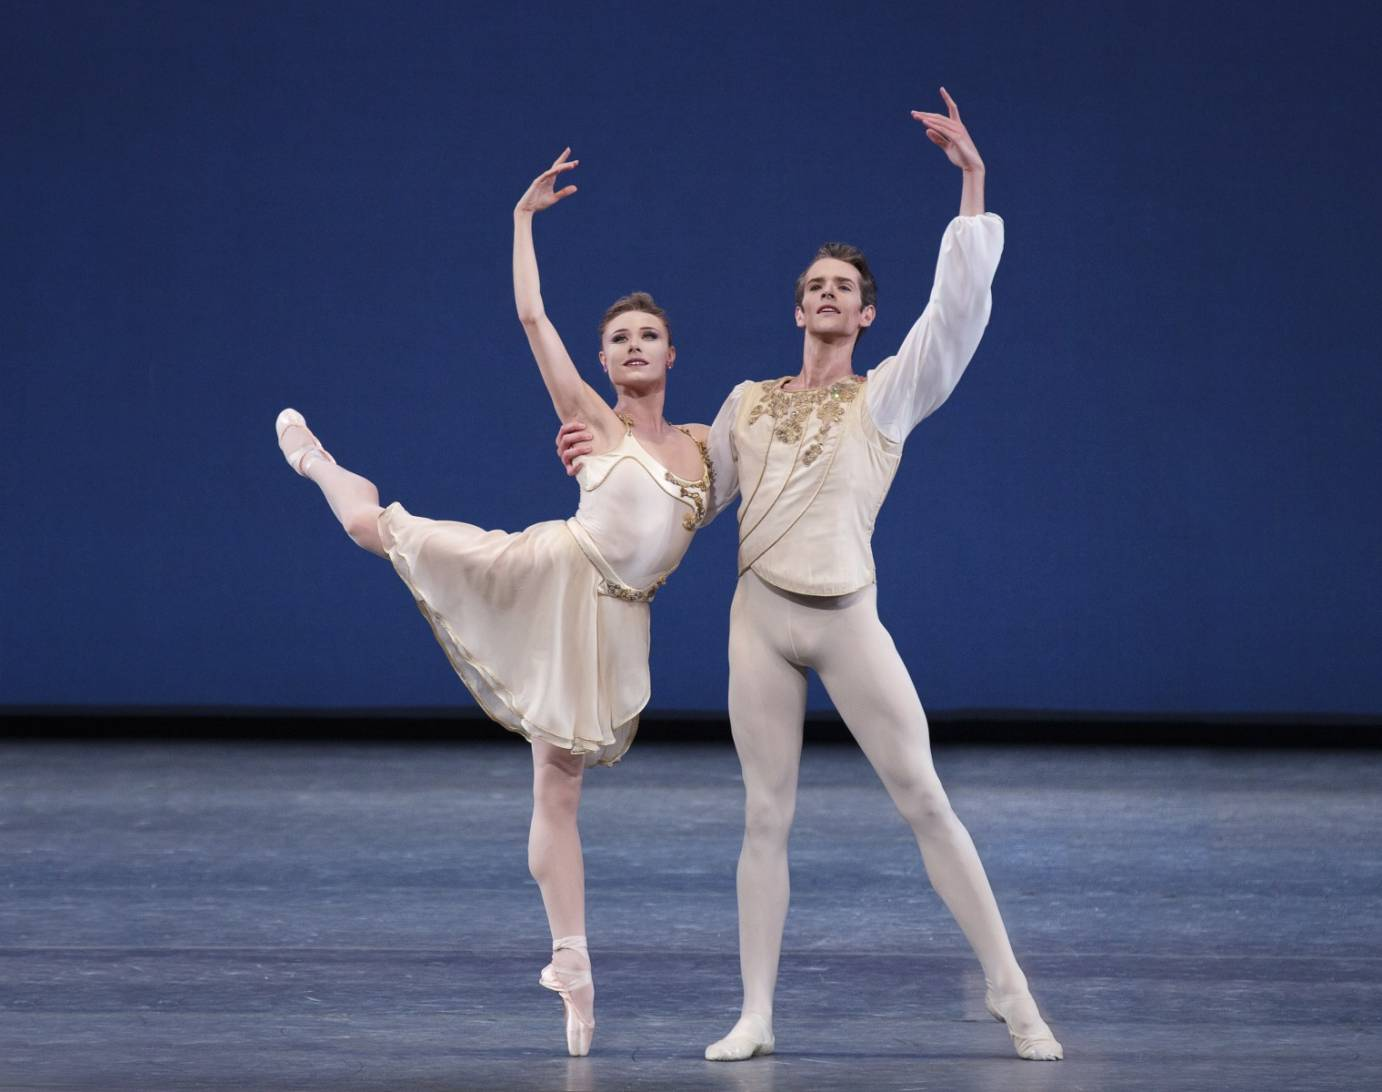 Sara Mearns and Russell Janzen in Balanchine's Chaconne. Photo: Paul Kolnik.